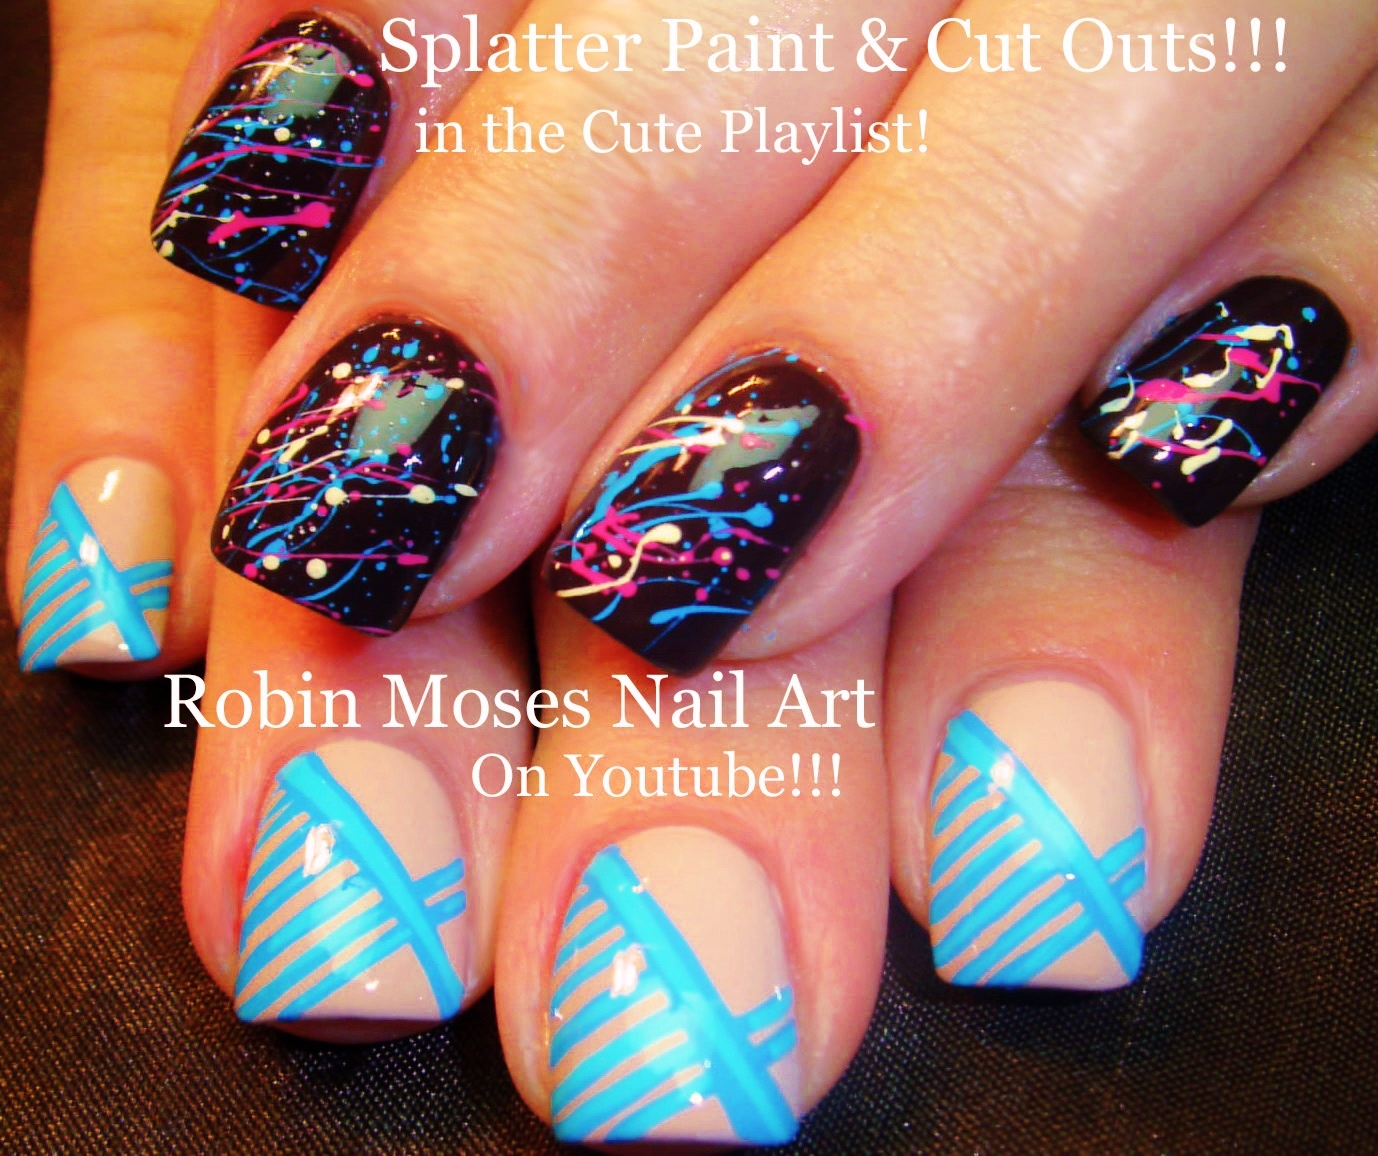 Robin Moses Nail Art Designs: Robin Moses Nail Art: Color Dripping Nail Design